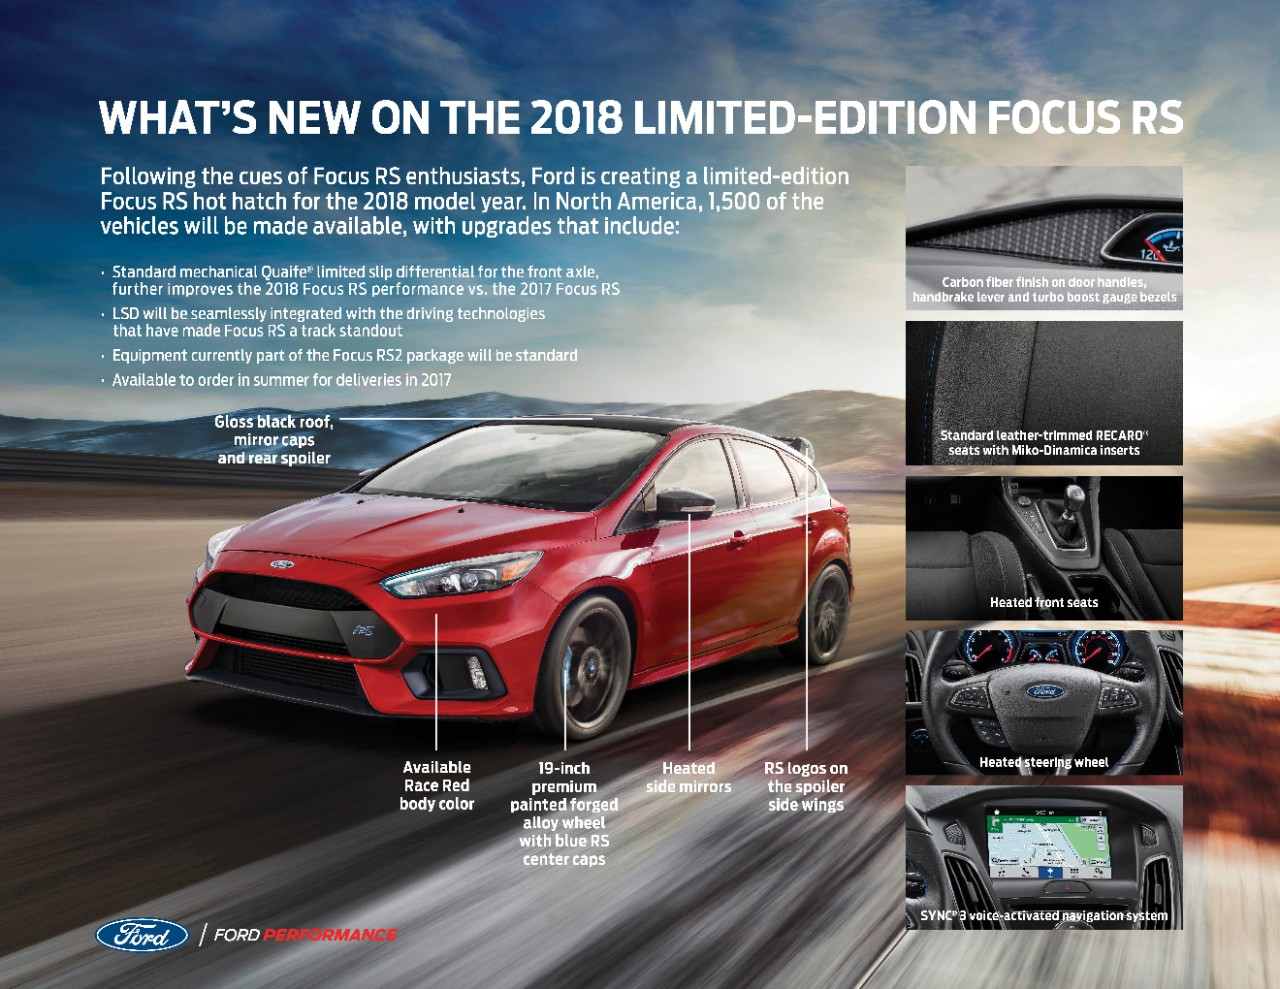 Ford is sending off the 2018 ford focus rs with a limited edition model